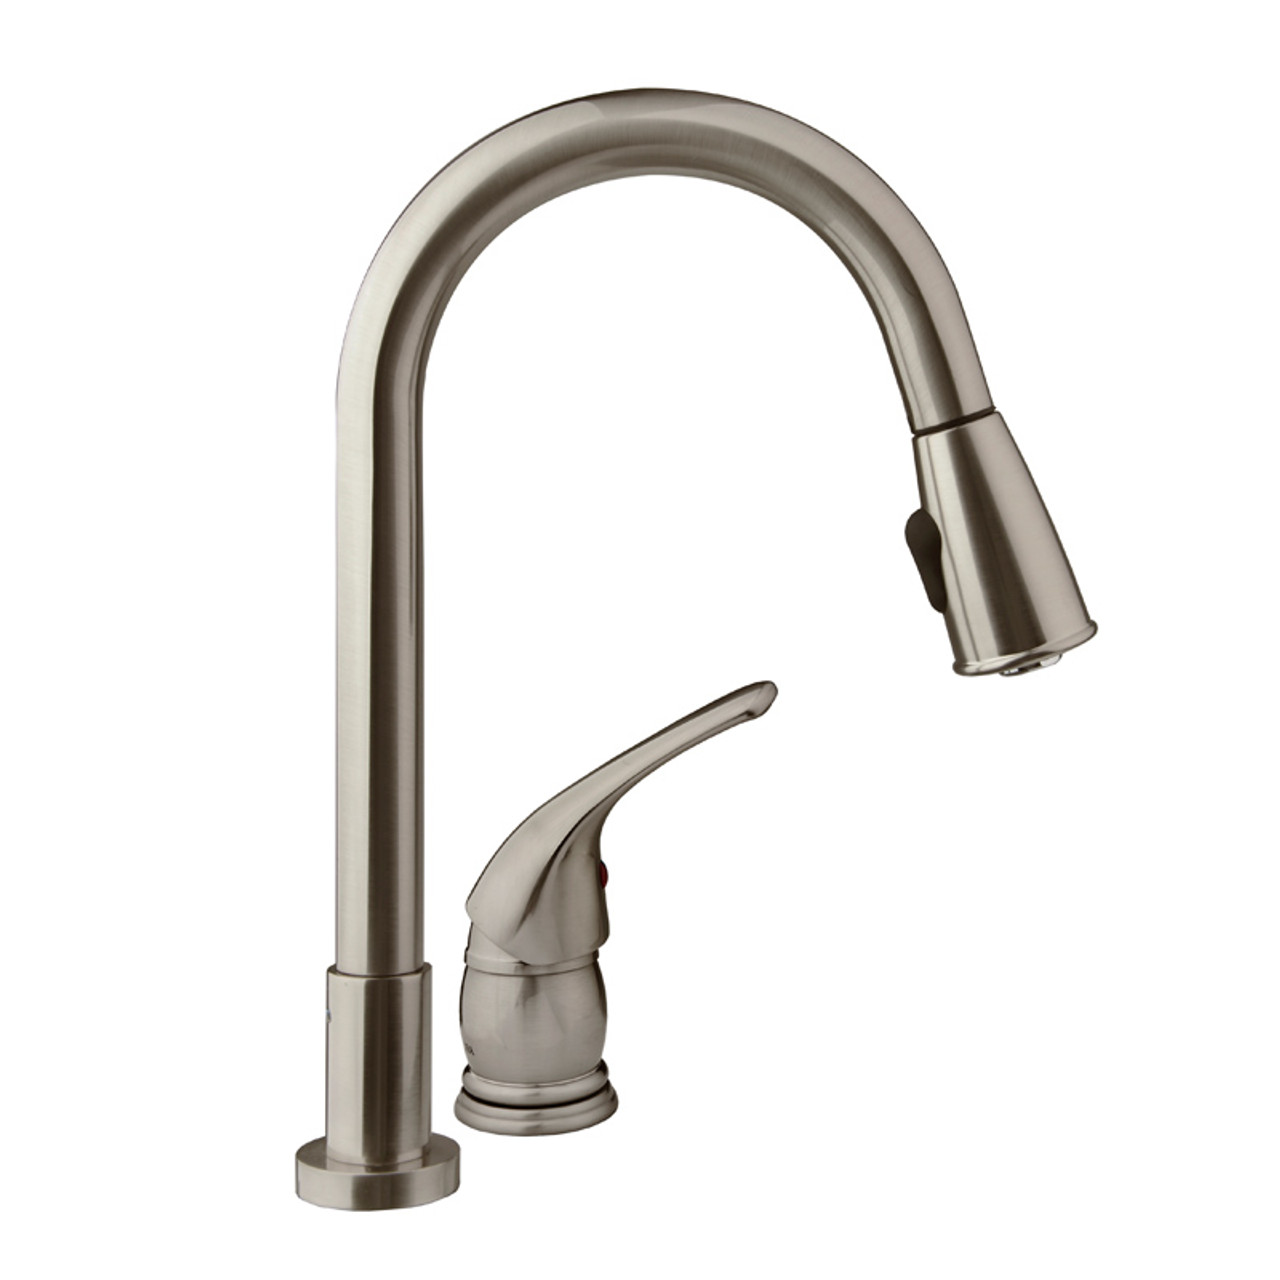 Delicieux Pull Down RV Kitchen Faucet